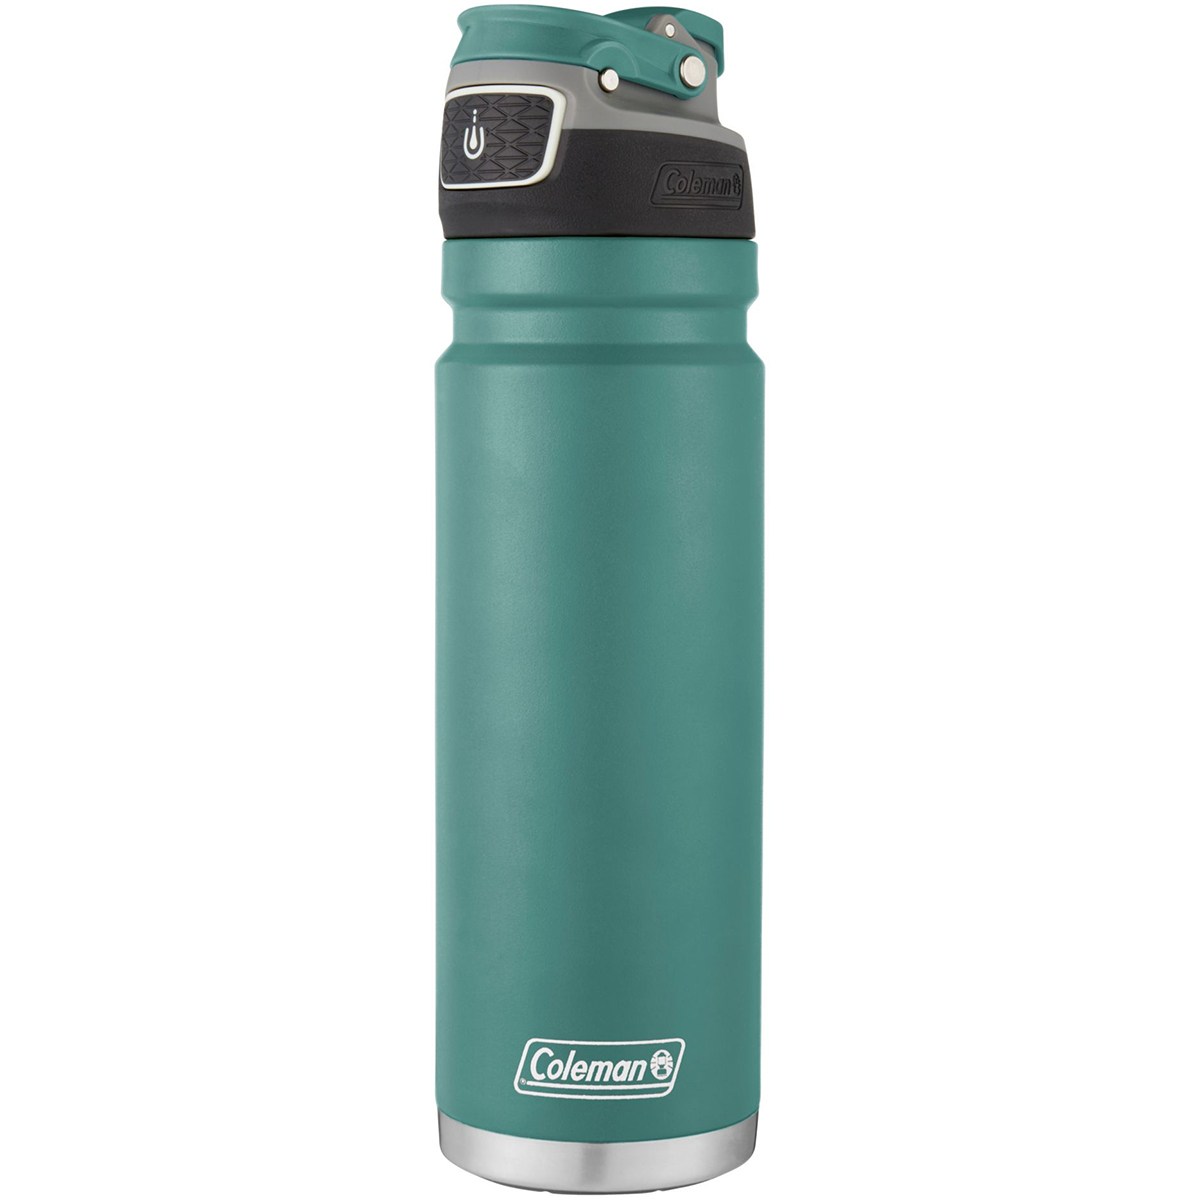 Coleman-24-oz-Free-Flow-Autoseal-Insulated-Stainless-Steel-Water-Bottle thumbnail 19